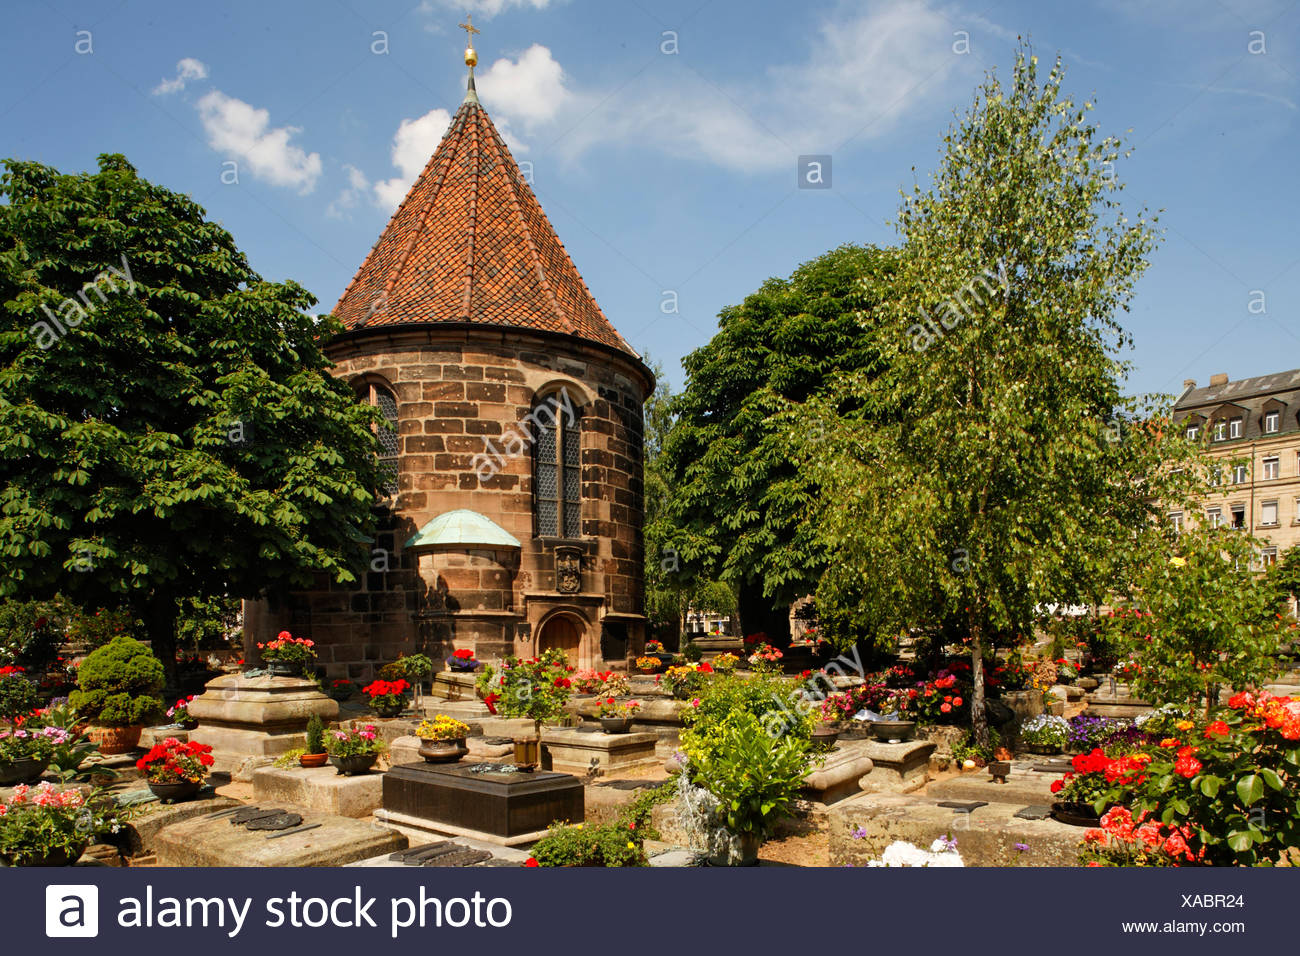 Johannis graveyard, St. Johannis area, Nuremberg, Middle Franconia, Bavaria, Germany, Europe Stock Photo